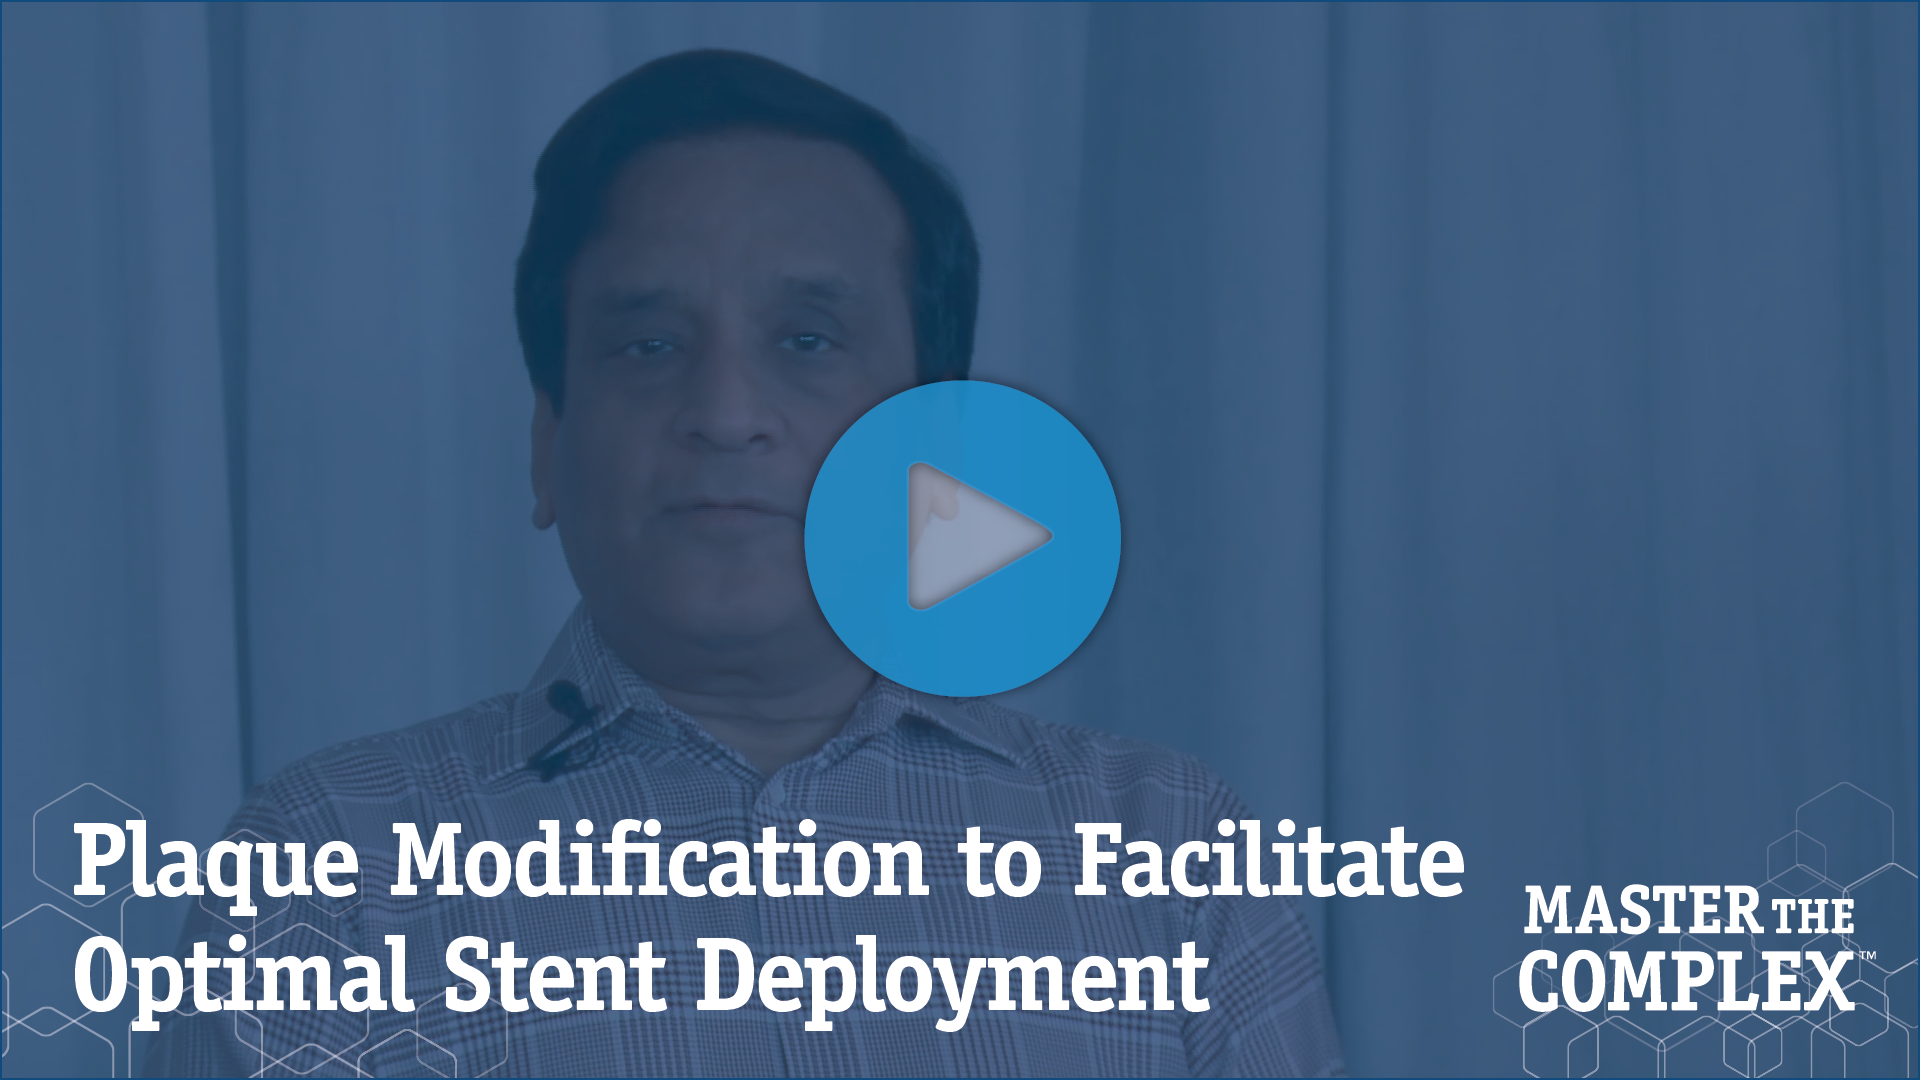 Plaque Modification to Facilitate Optimal Stent Deployment: Plaque modification using rotational atherectomy can facilitate optimal stent deployment, leading to better outcomes. Do you agree or disagree with this statement, and why?